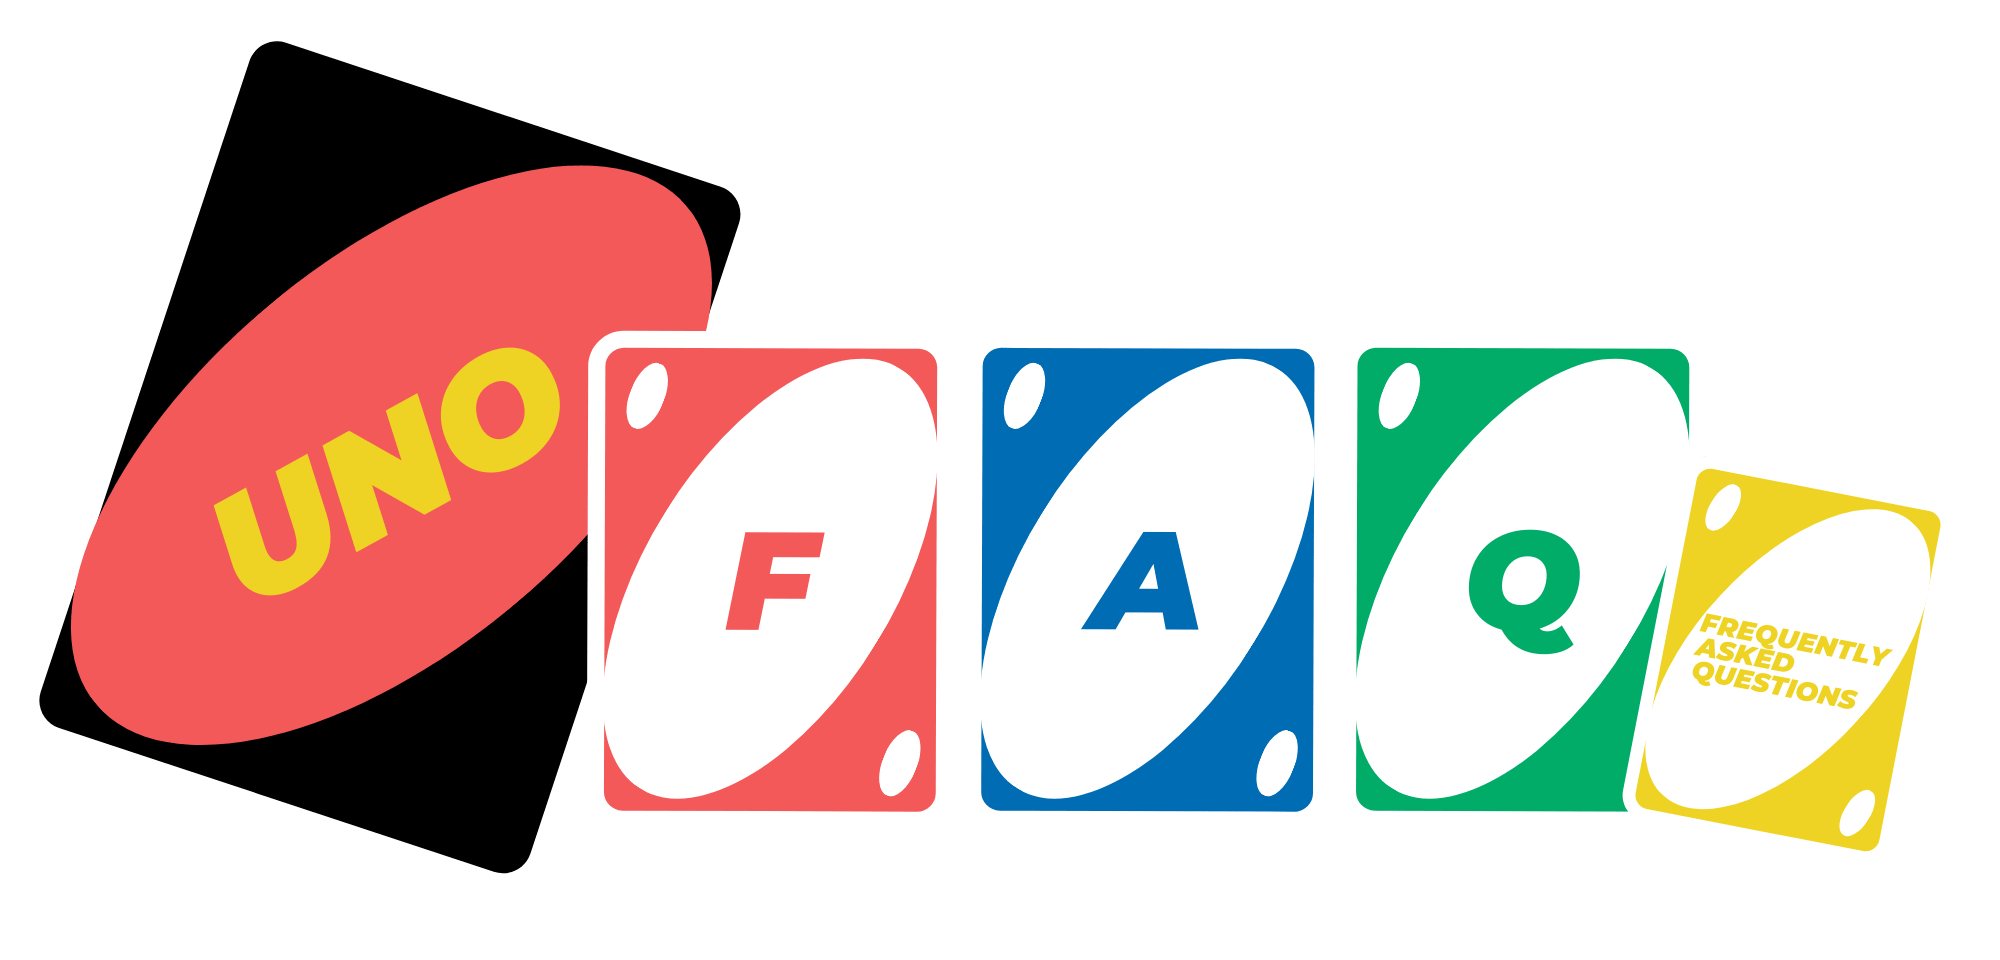 Uno FAQ - frequently asked questions